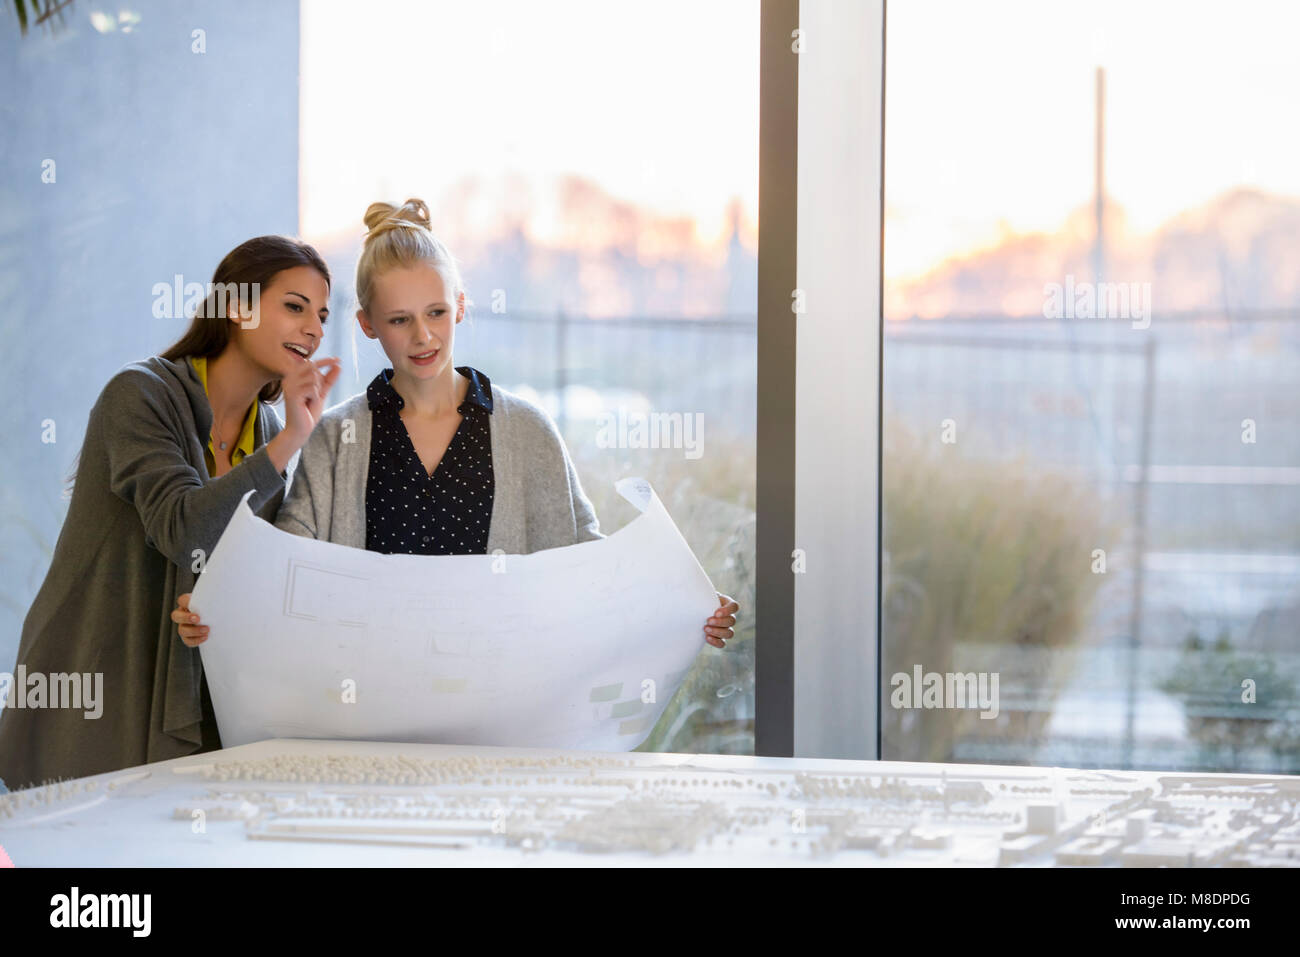 Colleagues discussing town planning drawings in office - Stock Image